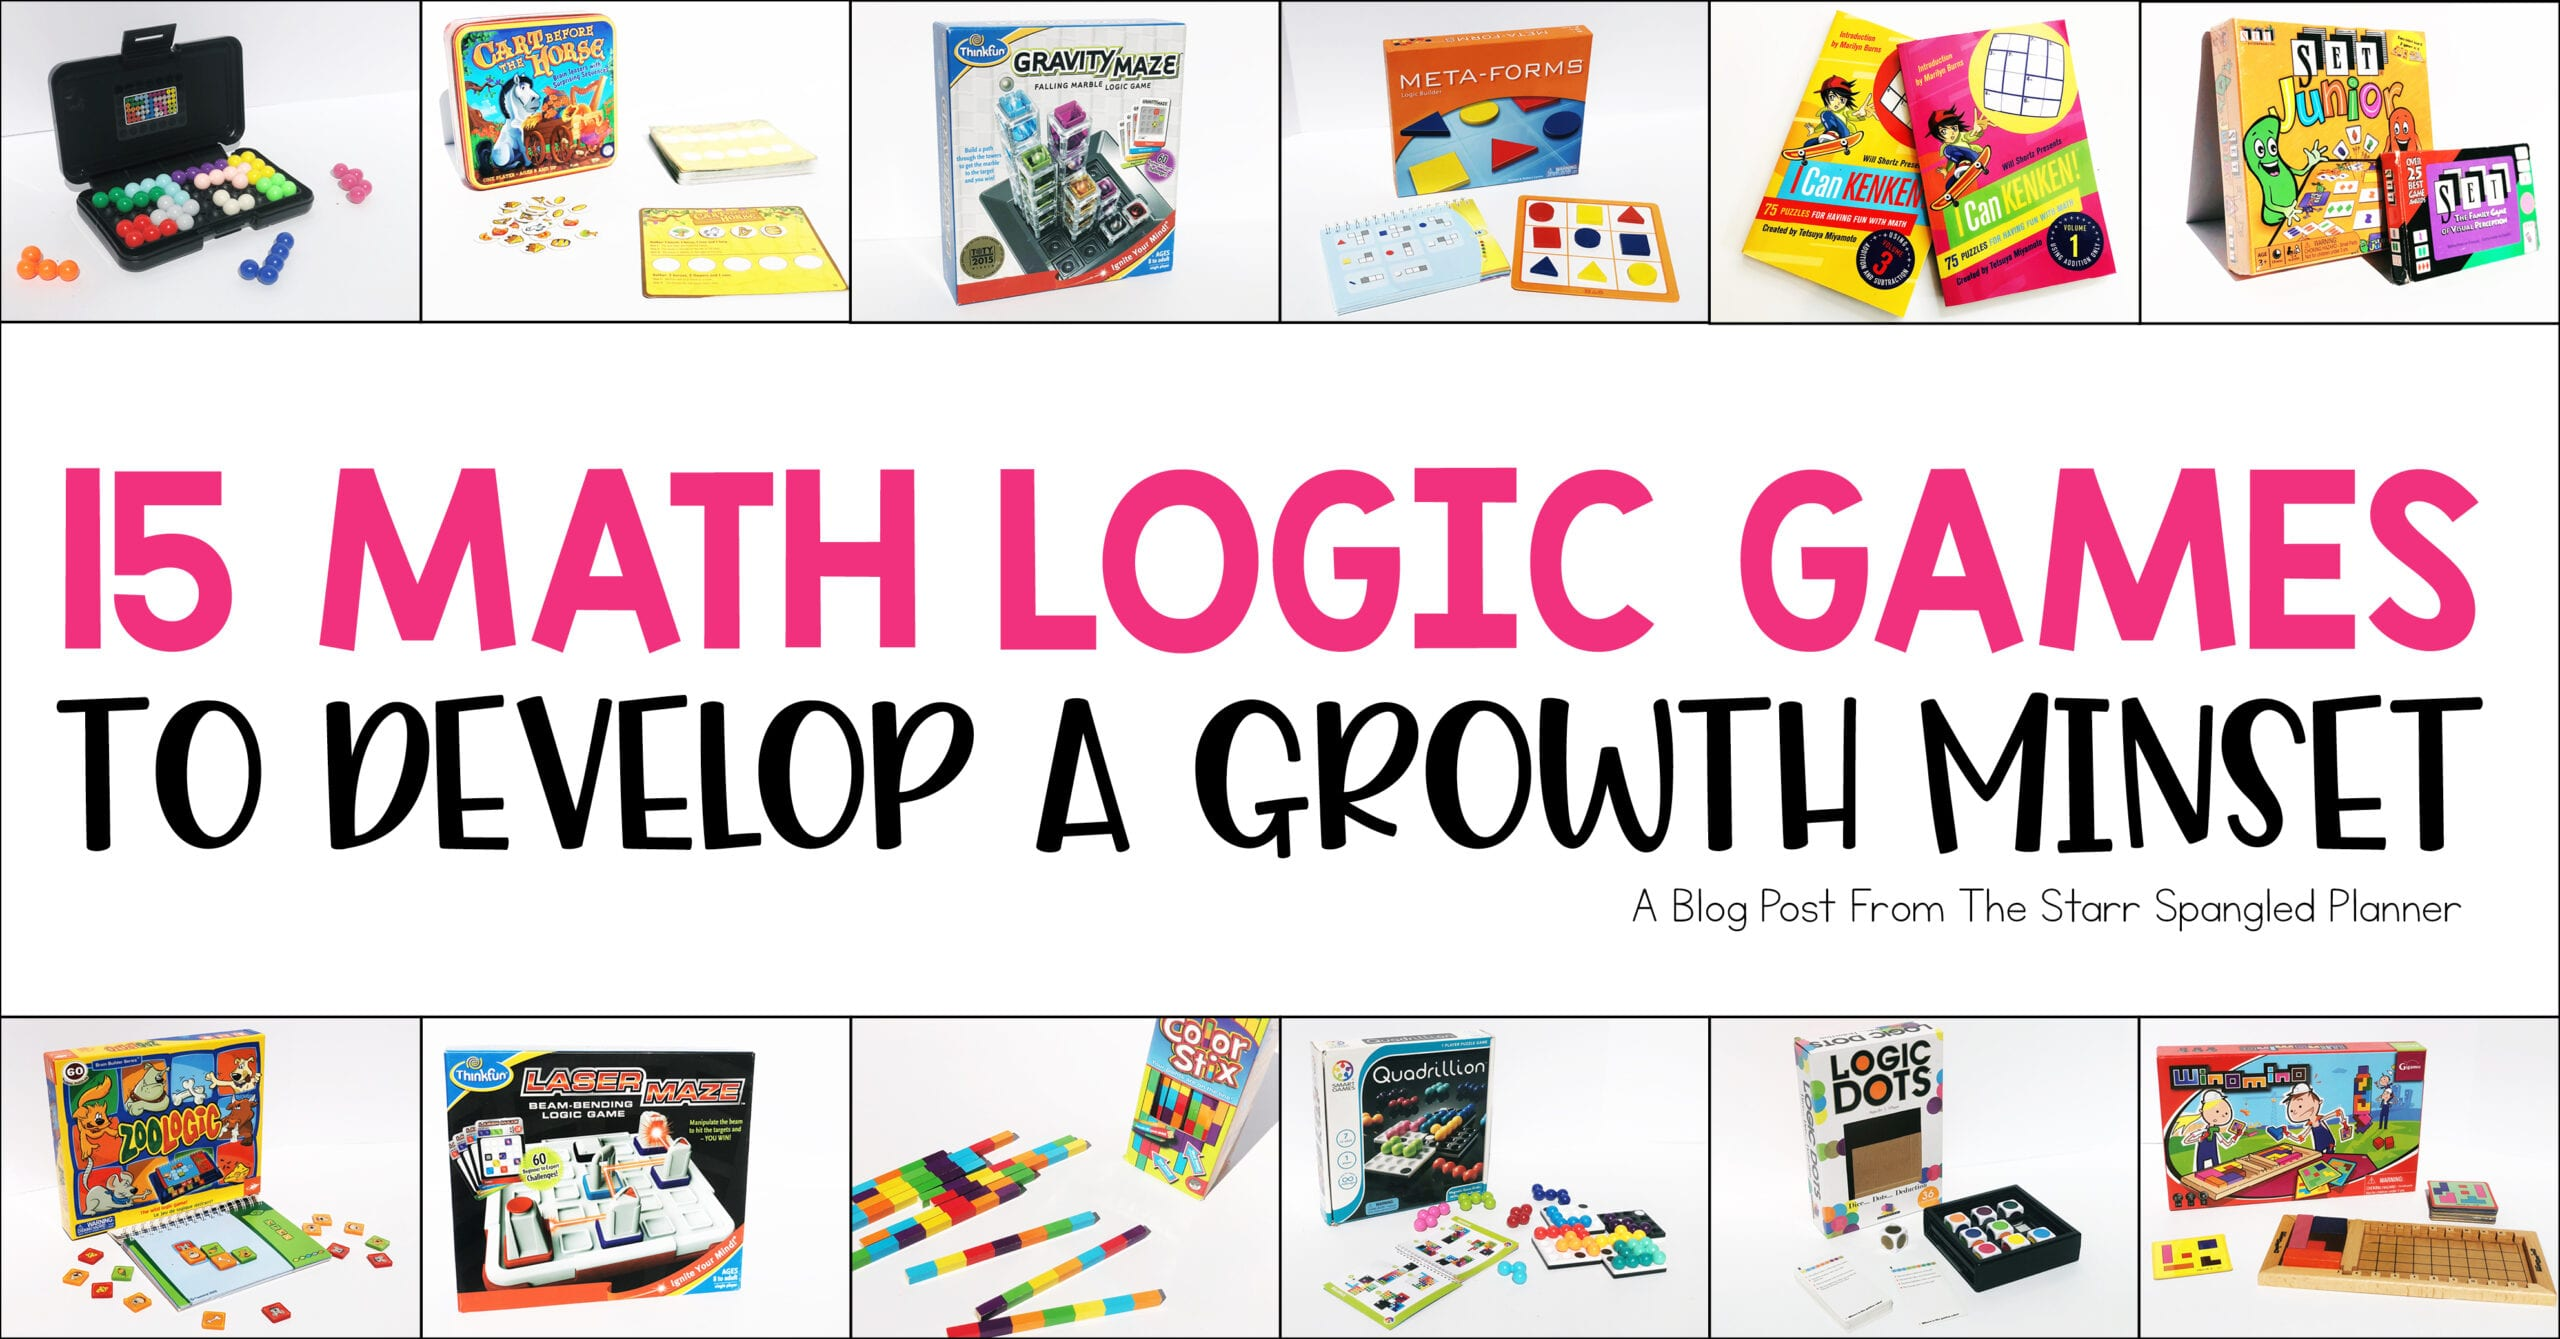 15 Logic Games to Develop a Growth Mindset! - Teaching with